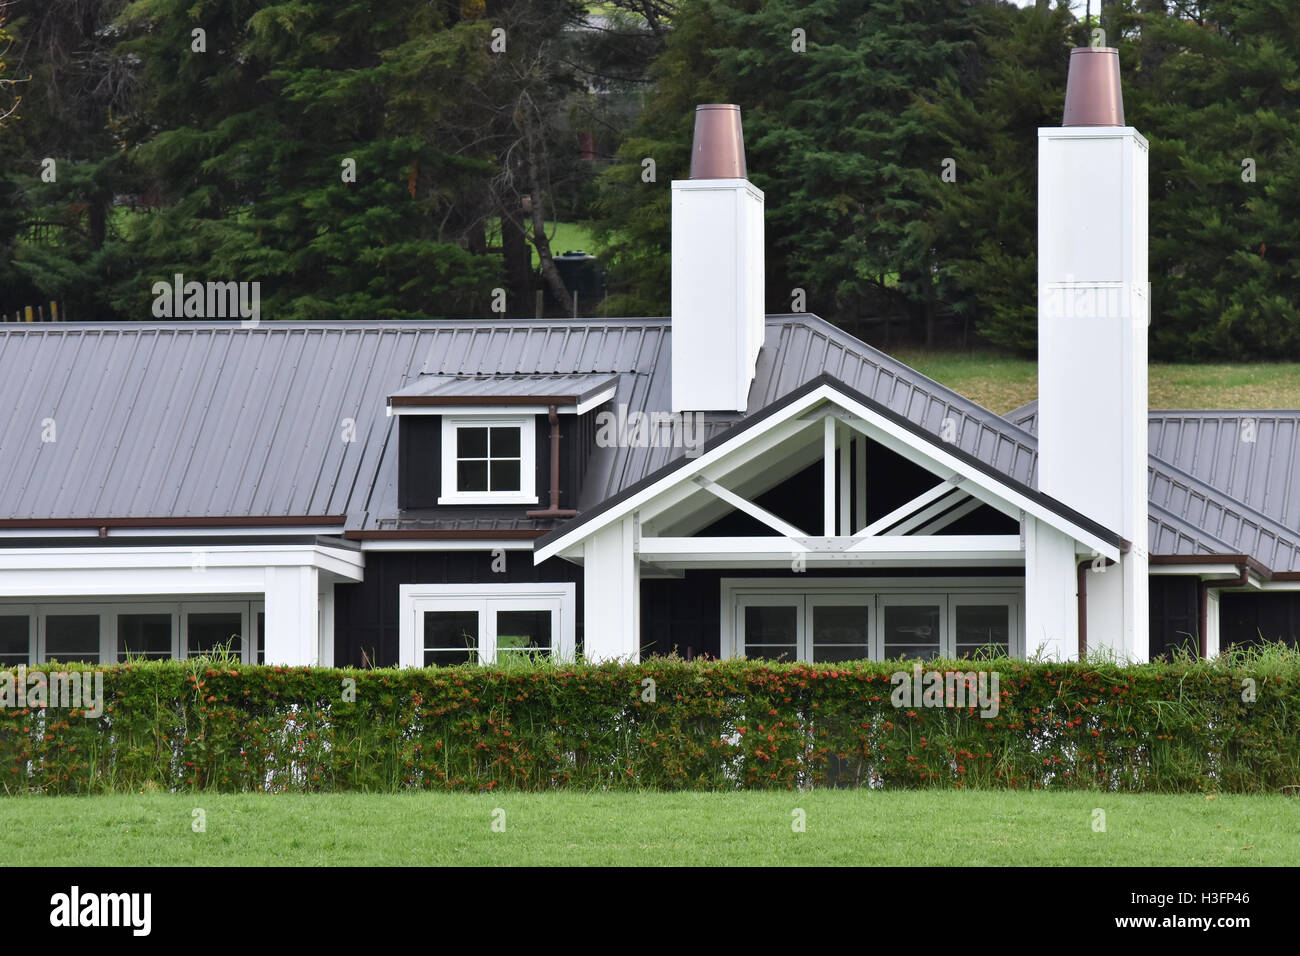 Countryside House With Metal Roof And Multiple Chimneys Stock Photo Alamy